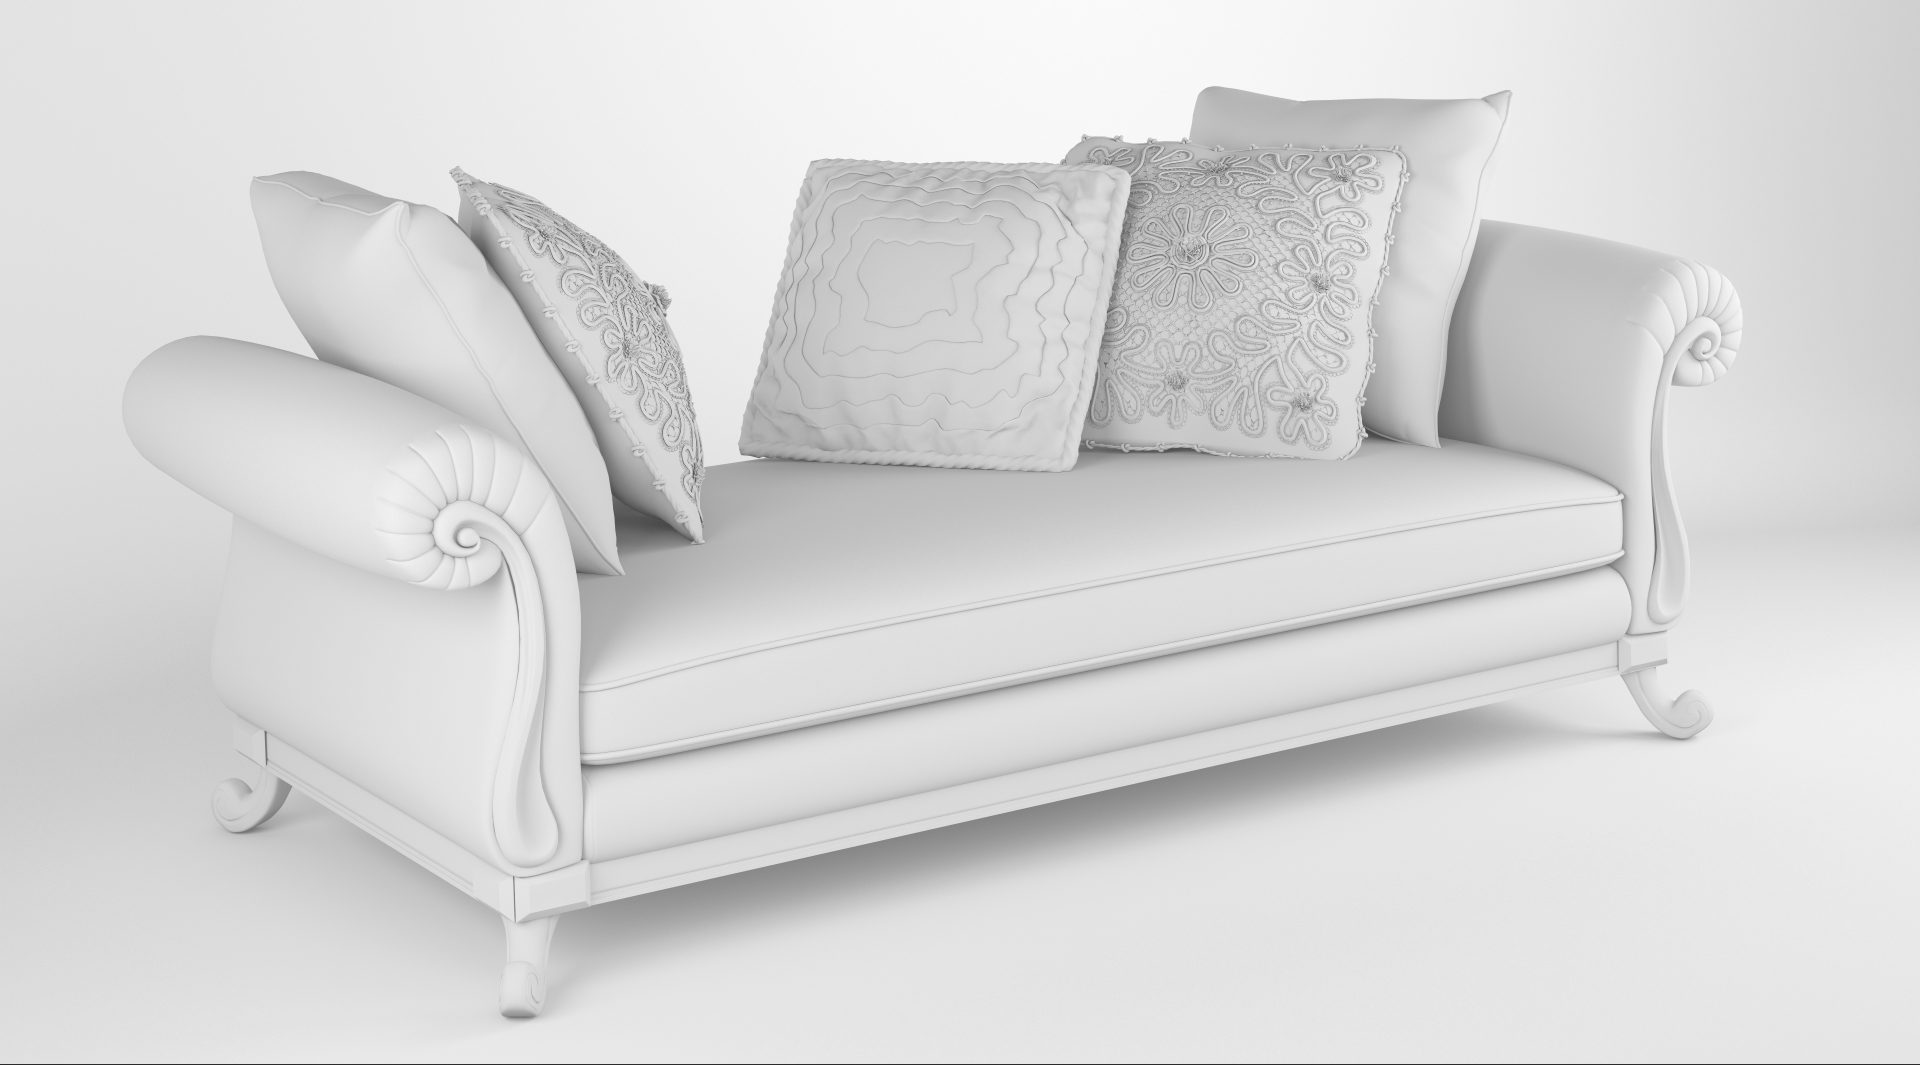 royal sofa with pillows 3d model max fbx ma mb obj 286259